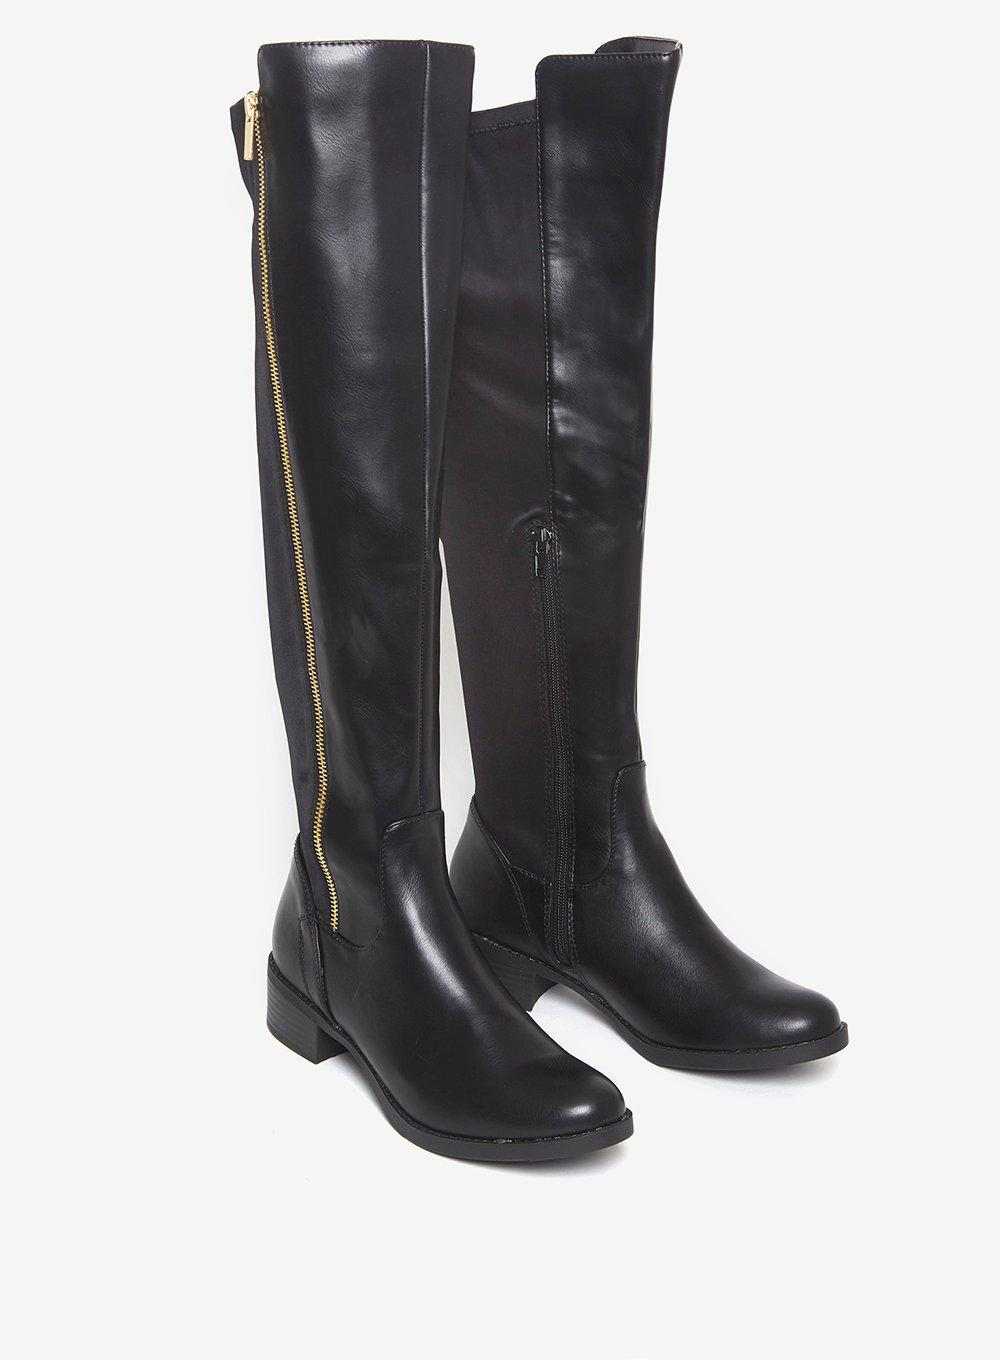 Dorothy Perkins Leather Black 'tally' Over Knee Boots